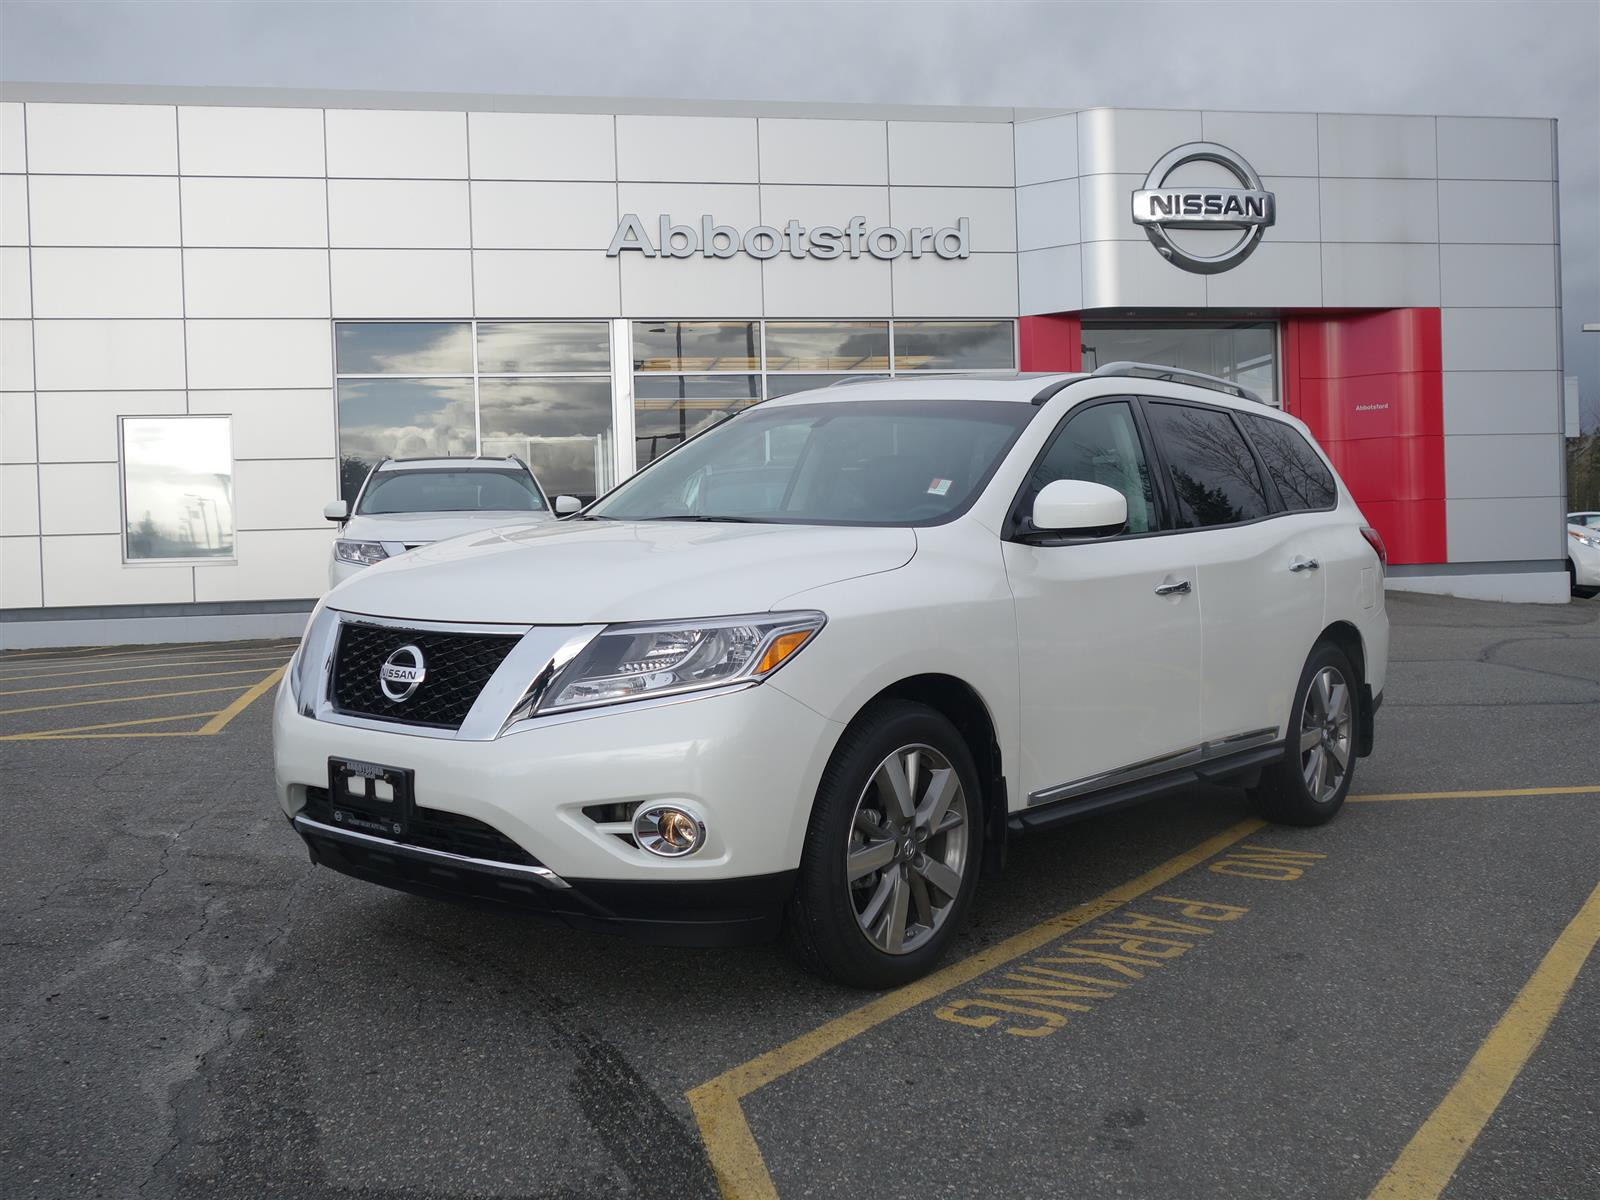 2015 nissan pathfinder for sale in sault ste marie ontario free hd wallpapers. Black Bedroom Furniture Sets. Home Design Ideas